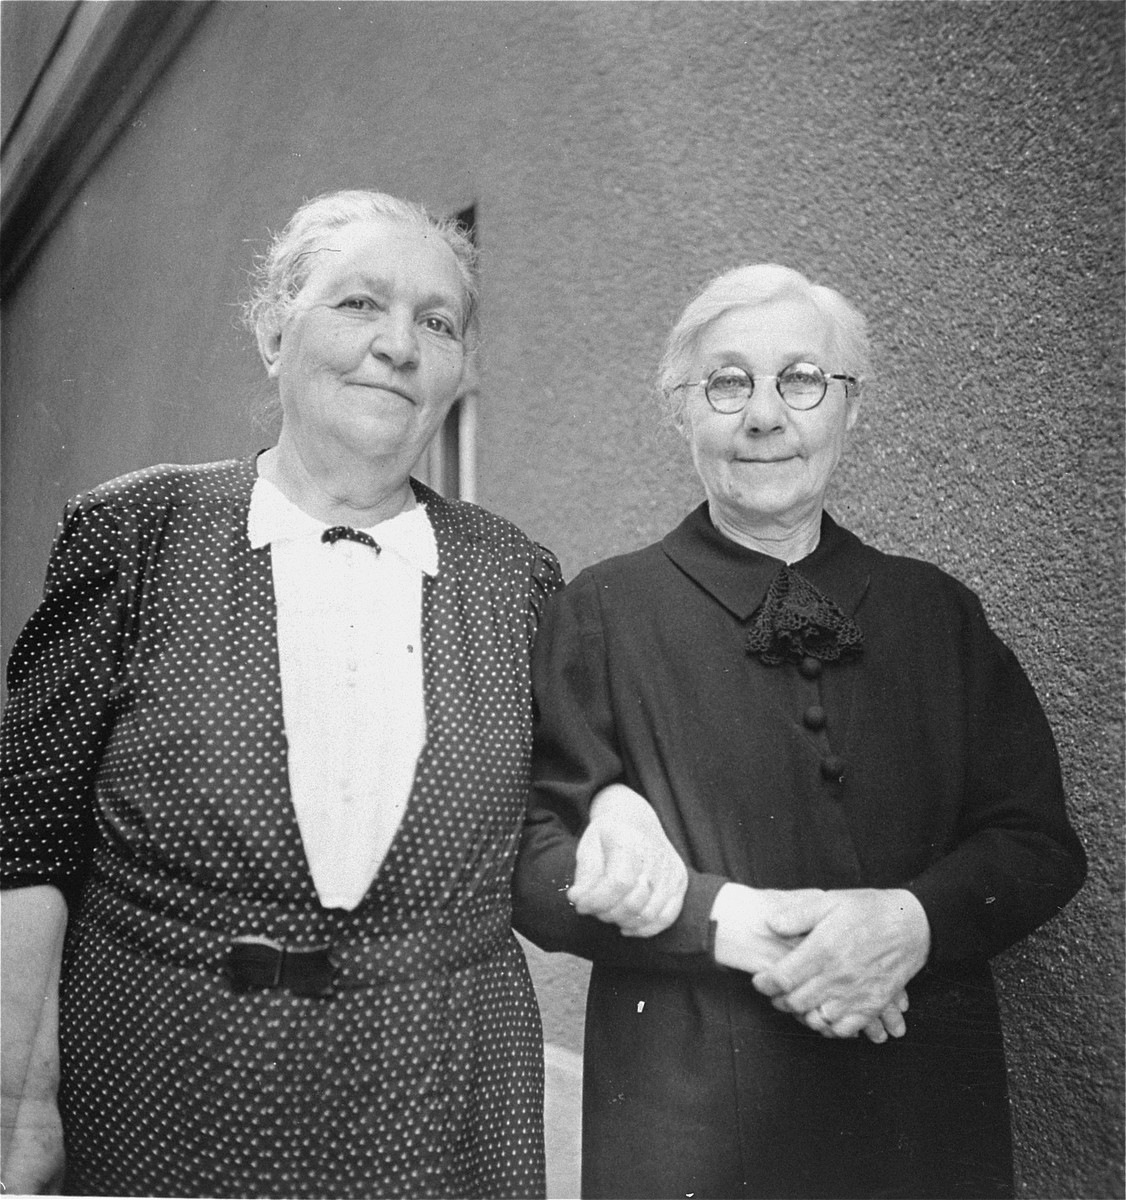 Portrait of two elderly Jewish women in Budapest.  Pictured are Regina Kornhauser (left) and Malvina (Spitzer) Kornhauser (right), the grandmother and great aunt of Gyorgy Pick.